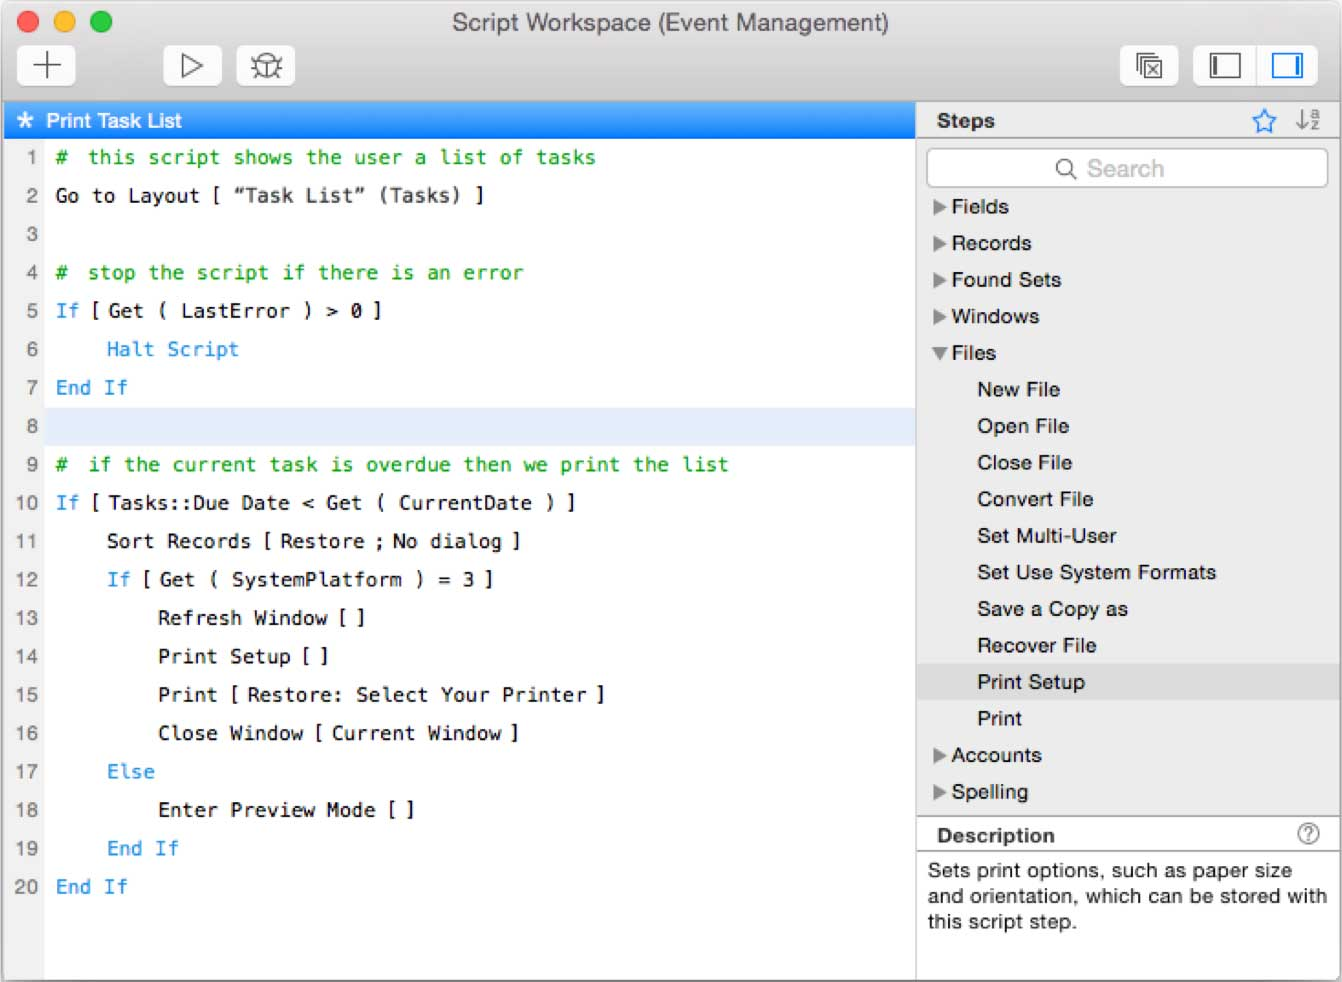 New! FileMaker 14 Script Workspace